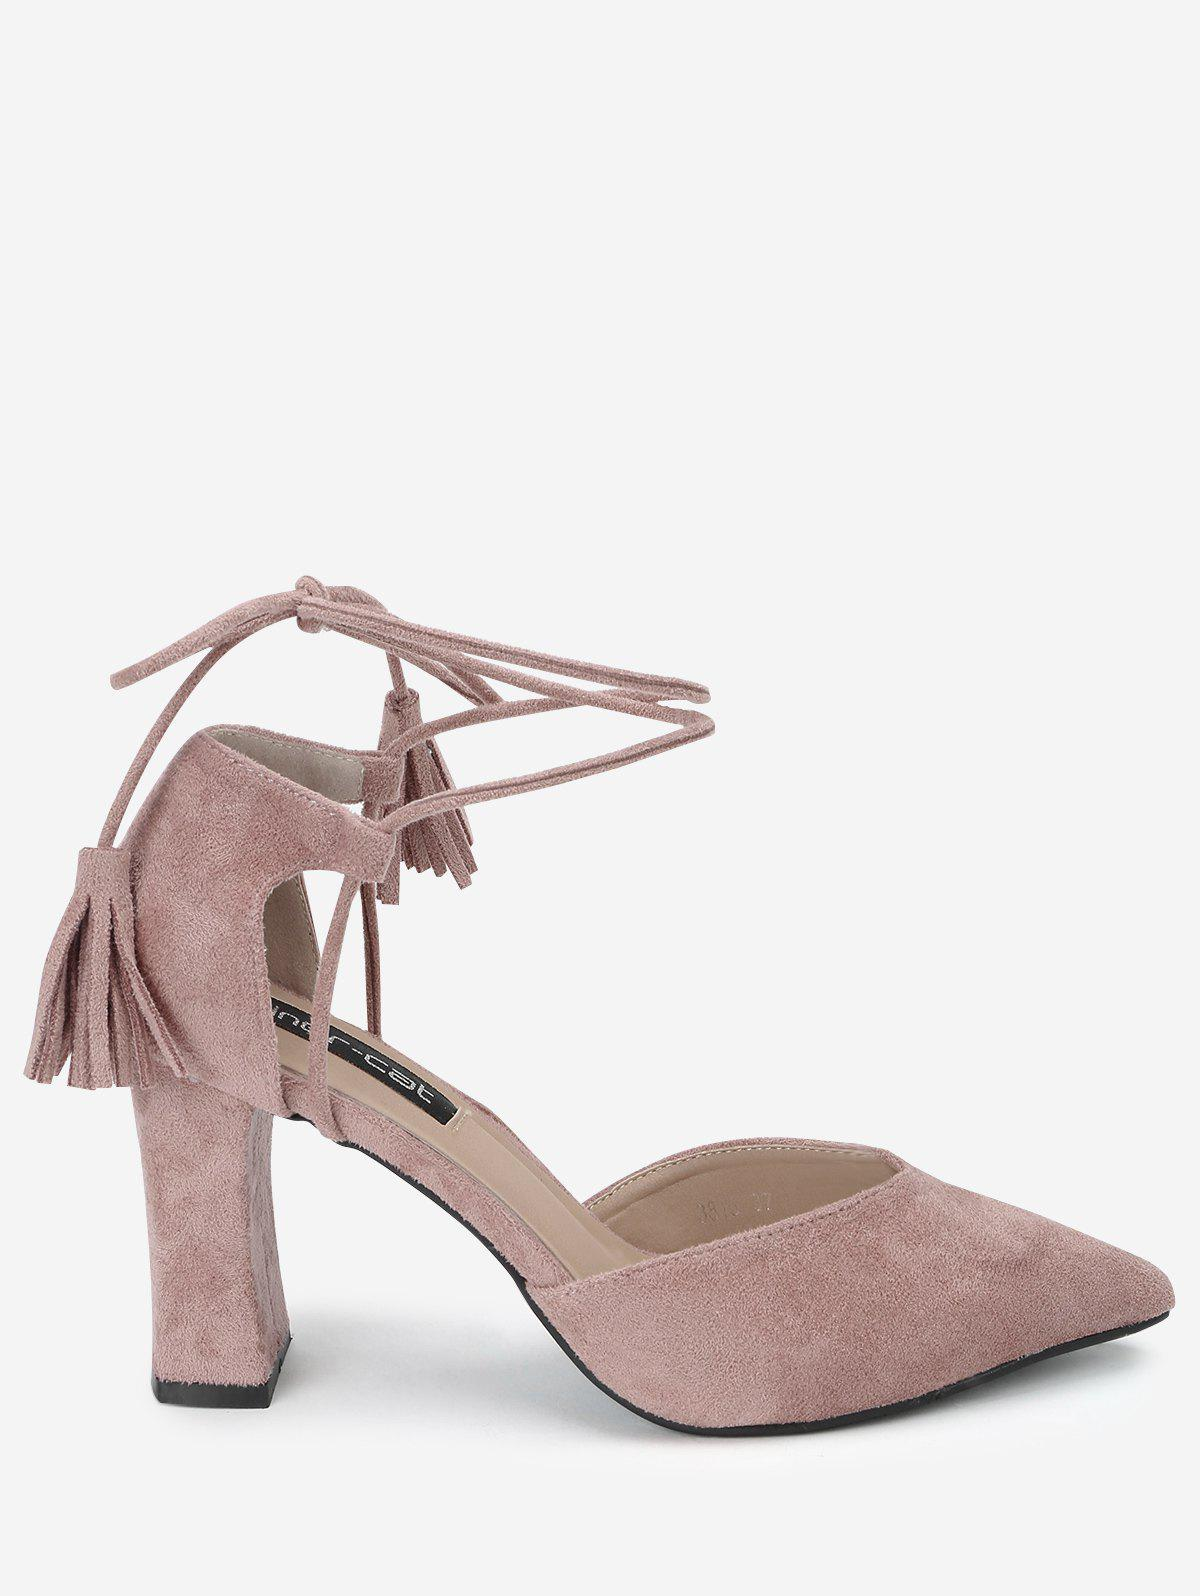 Tassel Block Heel Sandals - PINK 37